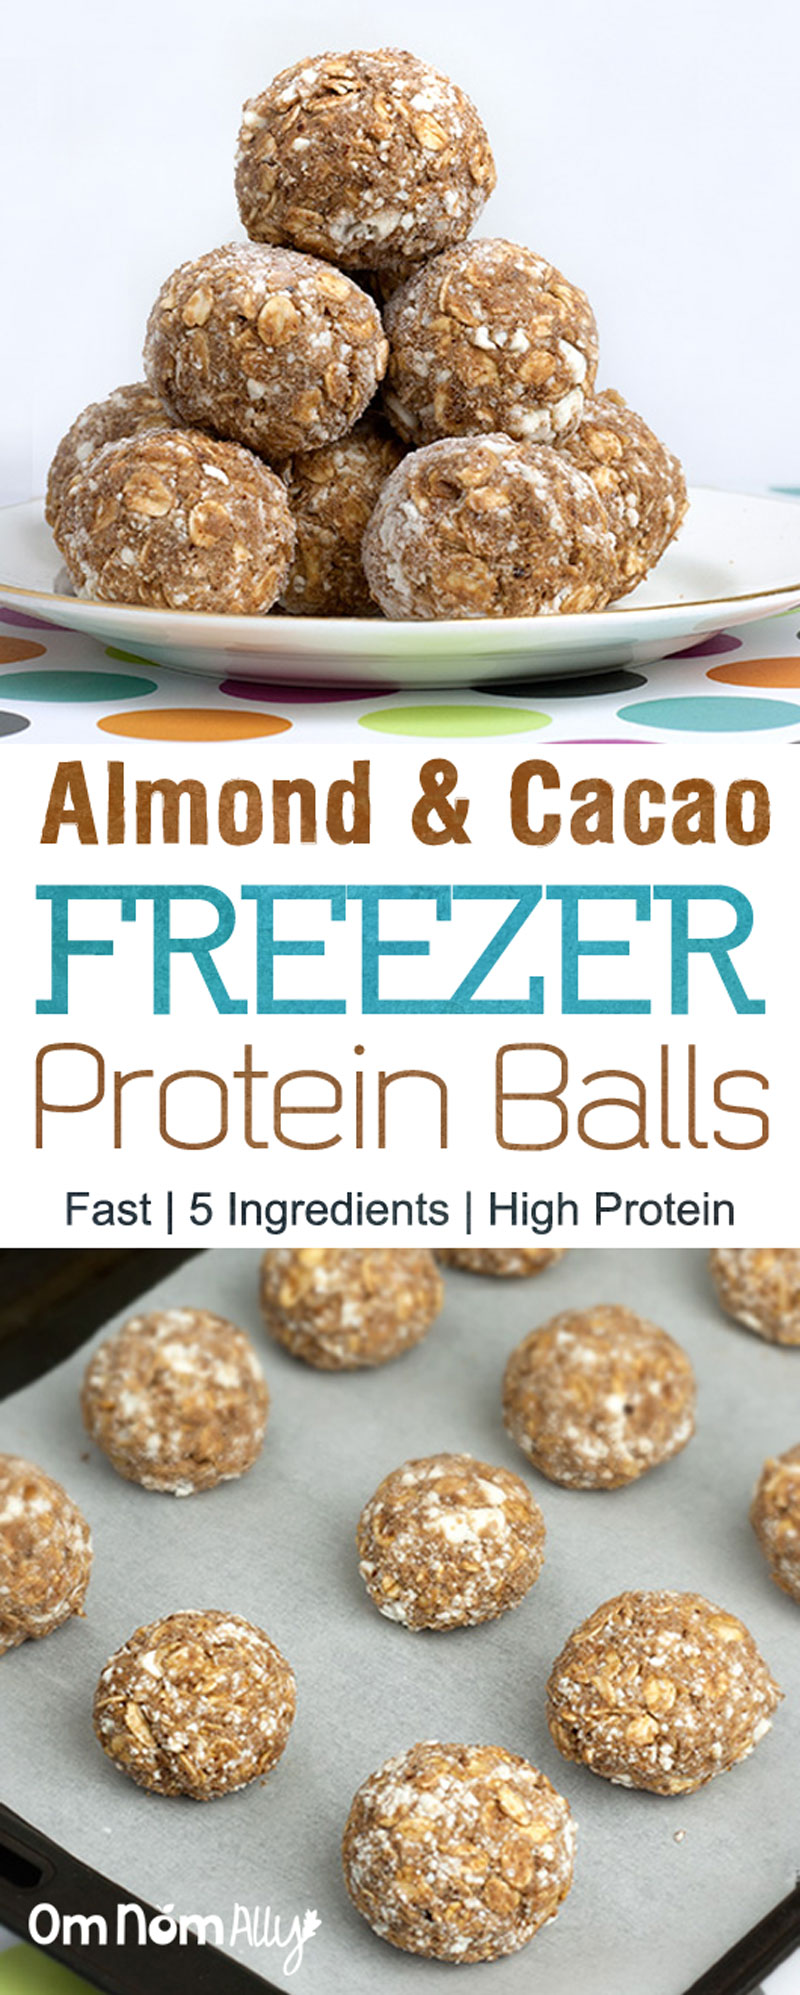 Almond & Cacao Freezer Protein Balls @OmNomAlly - If you want easy, home-made protein balls with only five superfood, wholegrain, nut and dairy ingredients - you've found the right recipe!